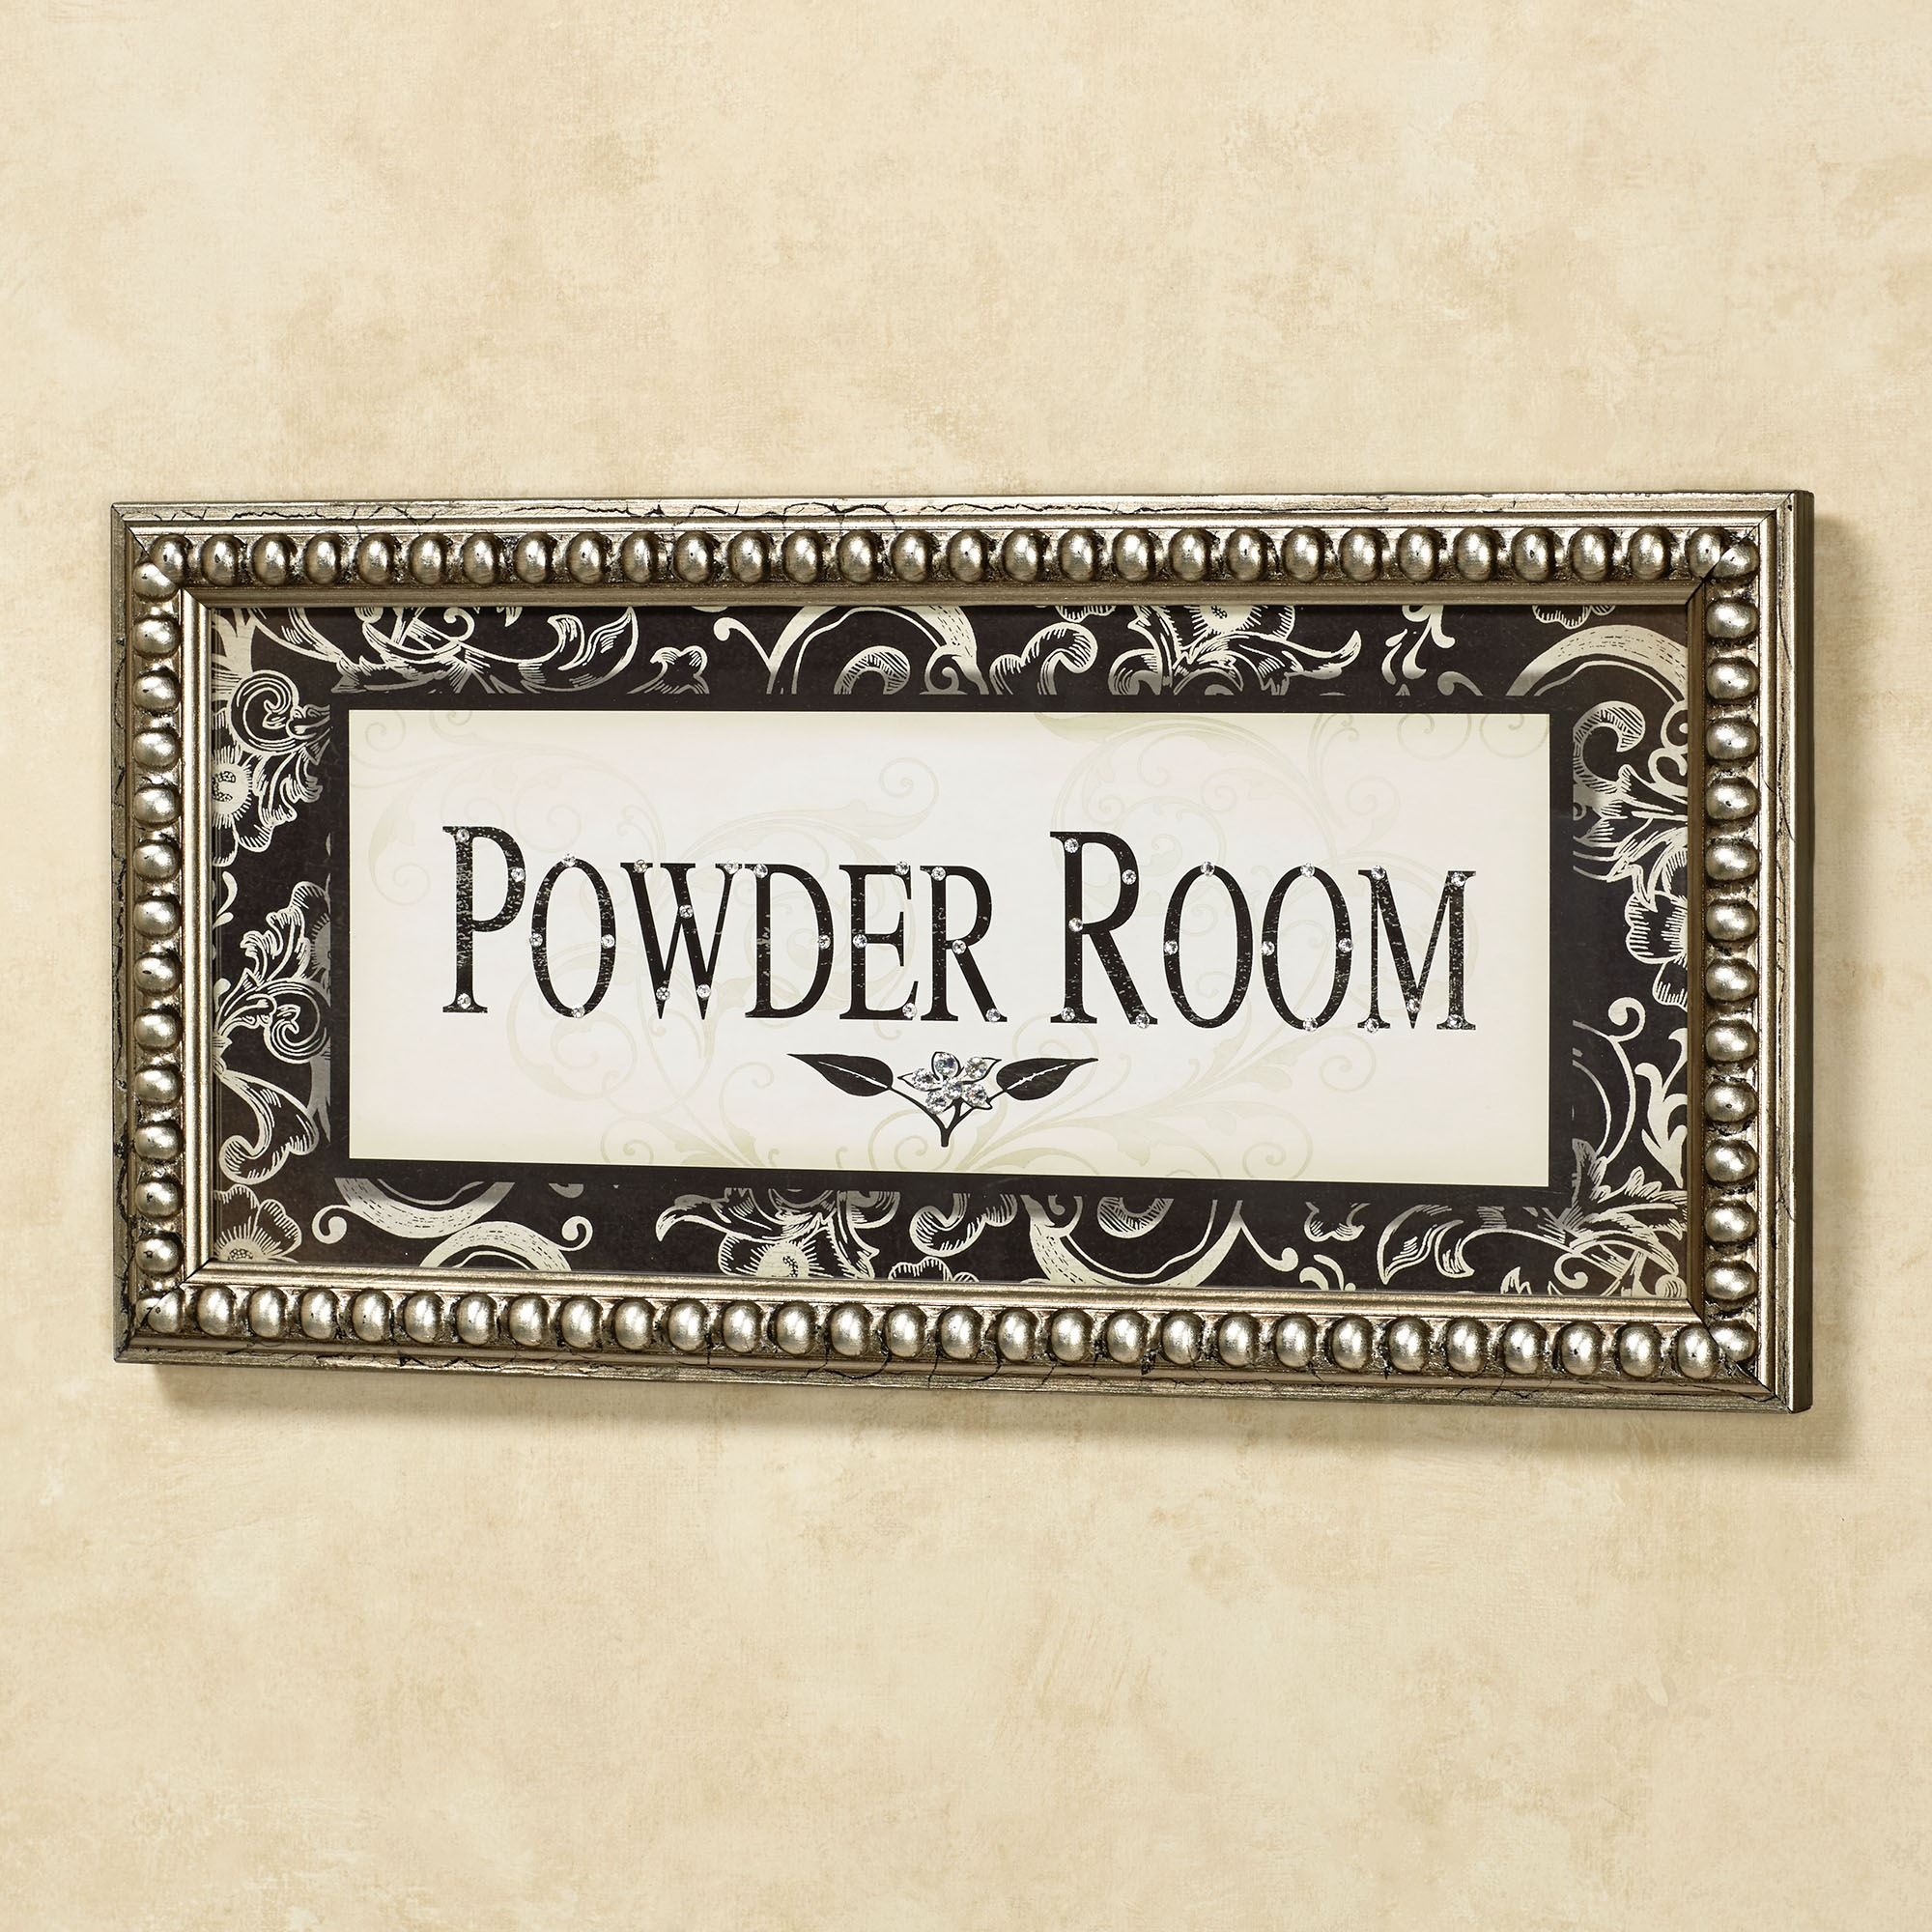 Powder Room Framed Wall Art Ivory Black Click To Expand